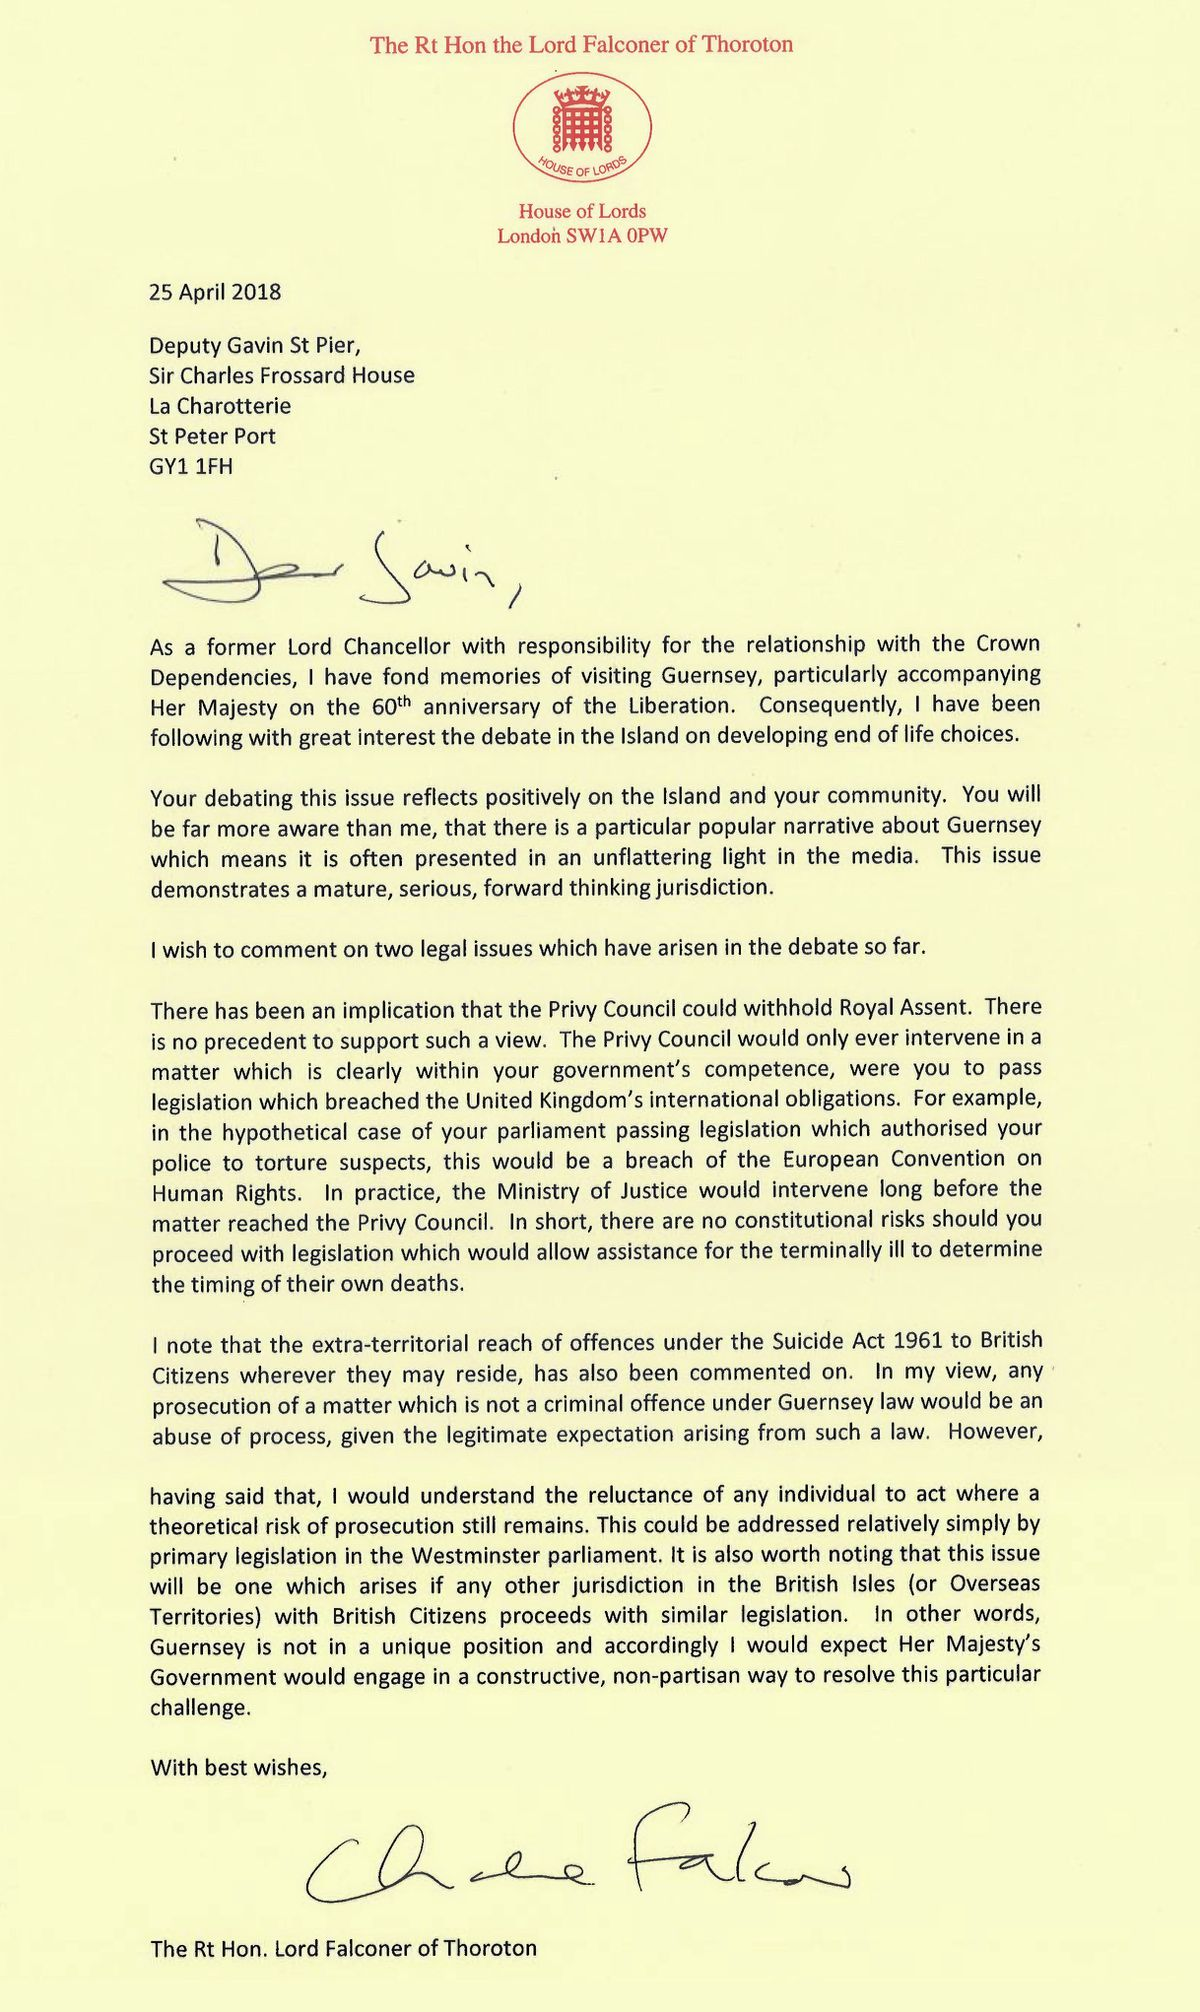 Letter to Gavin St Pier from Lord Falconer on assisted dying. (21353058)